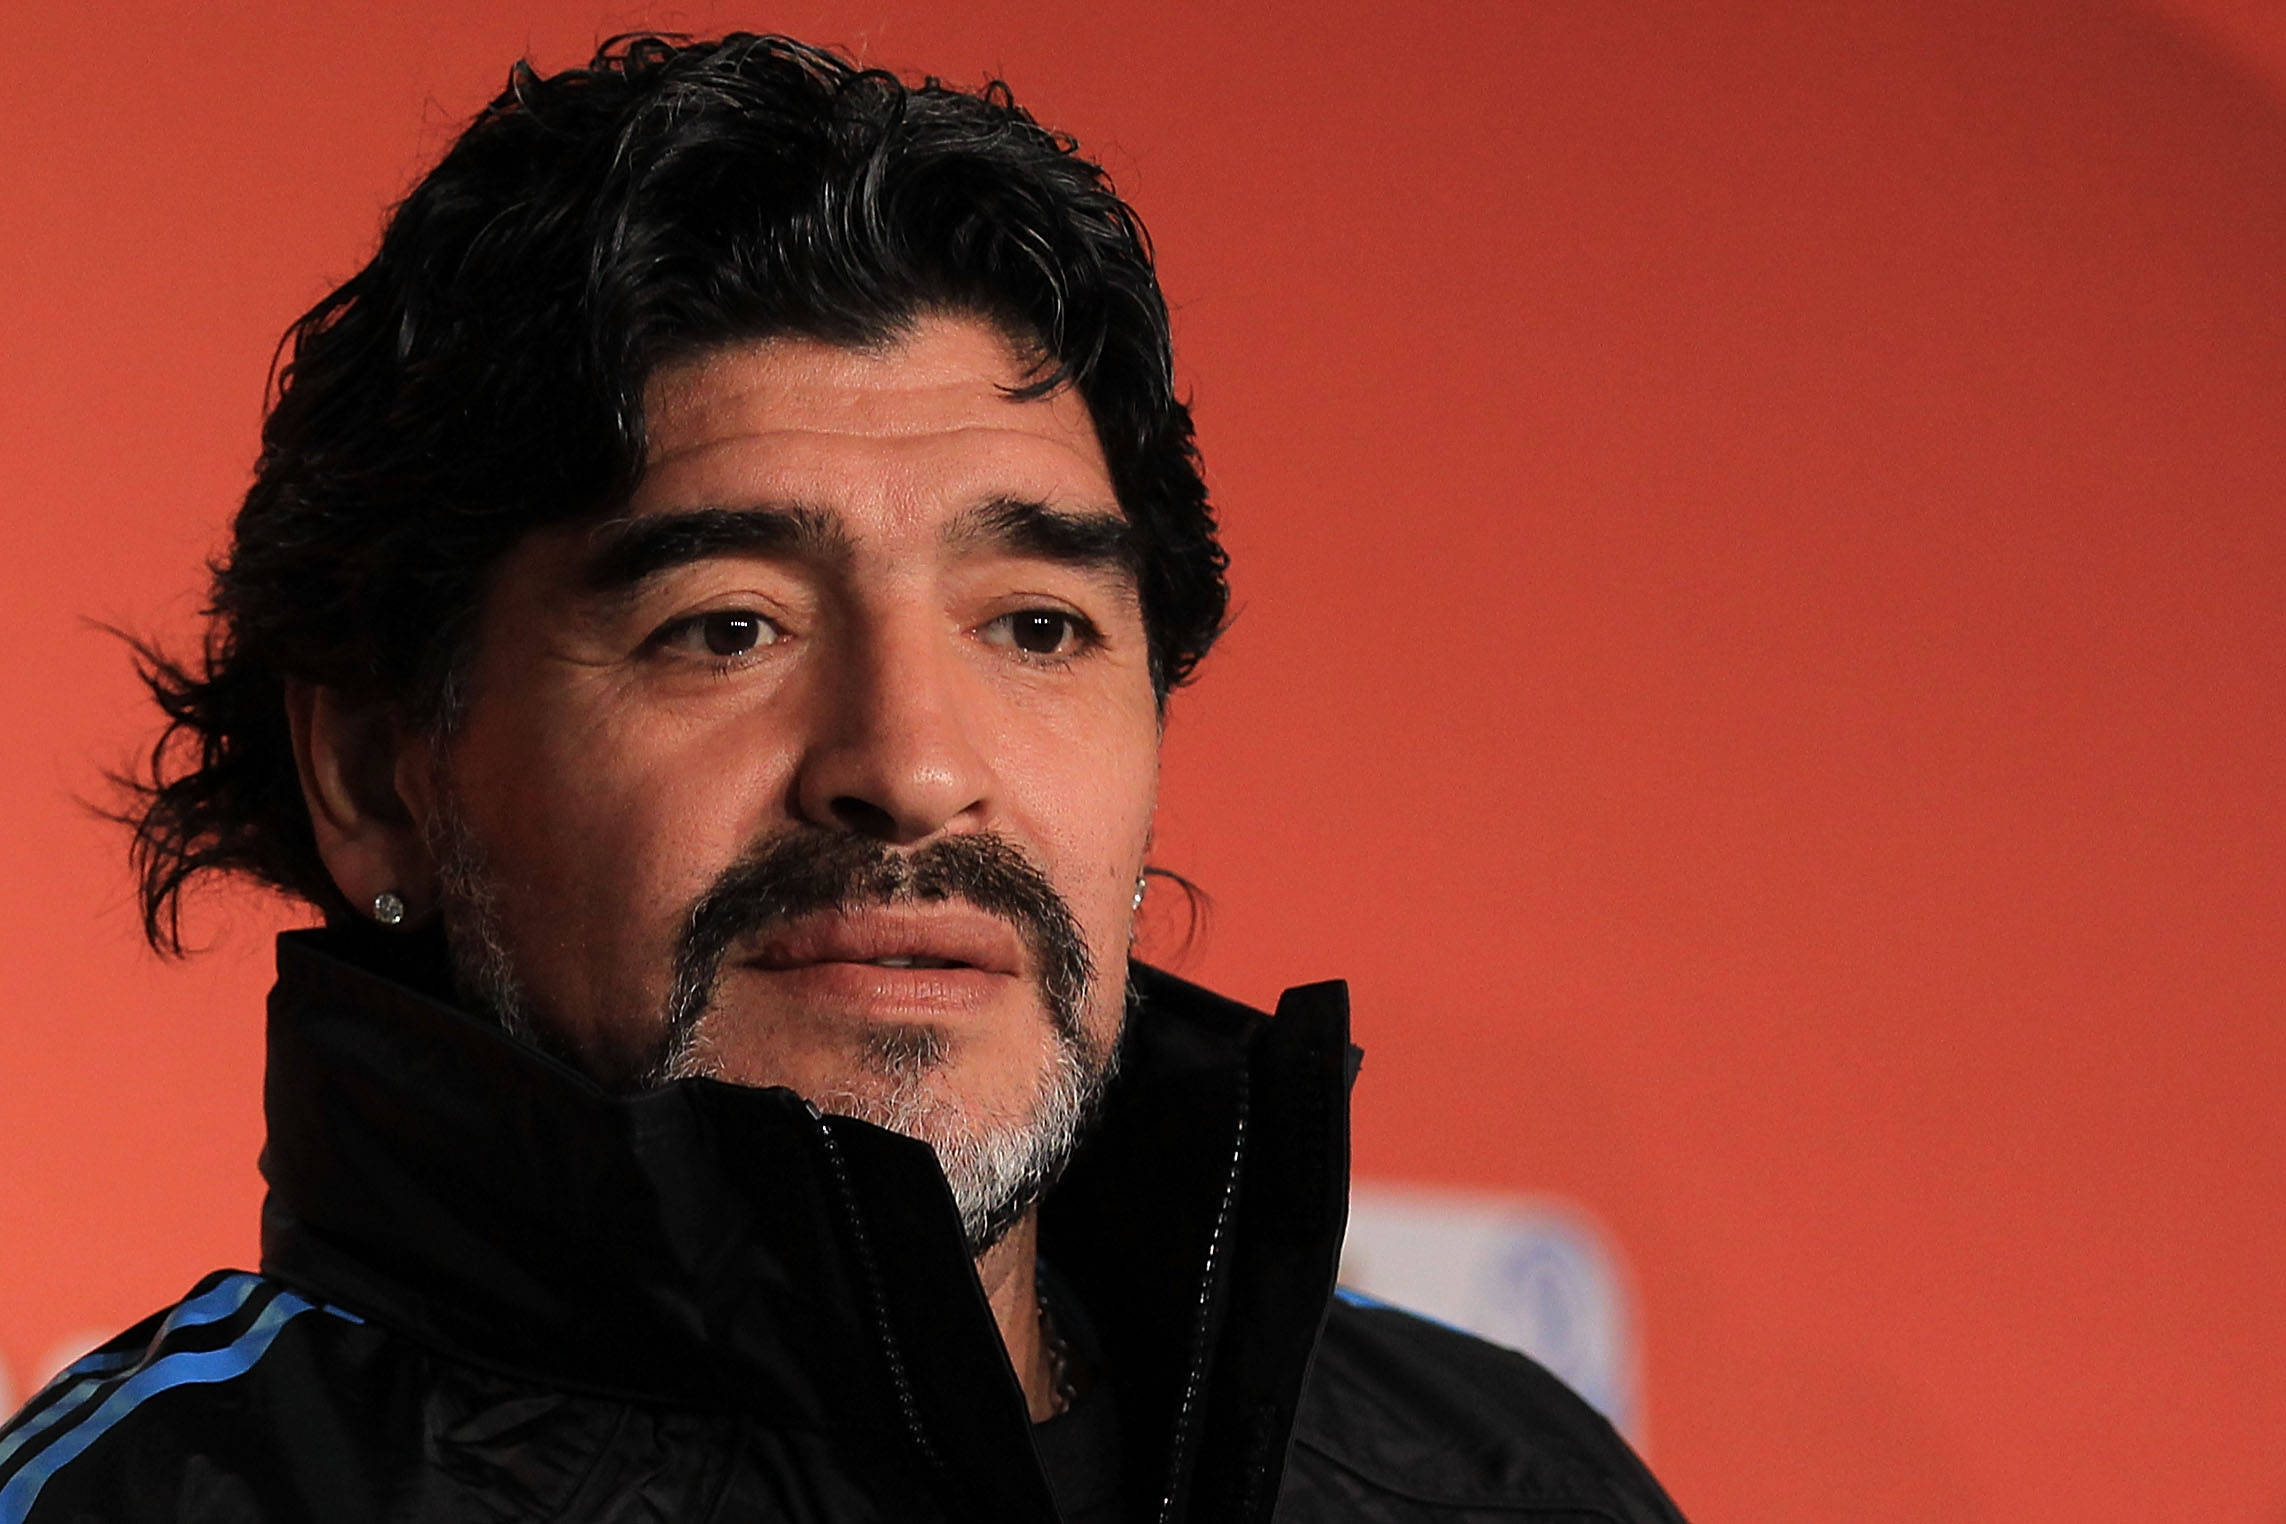 Maradona Pens a Letter Supporting Paolo Guerrero, Insinuates Peruvian Captain Is a Drug Addict